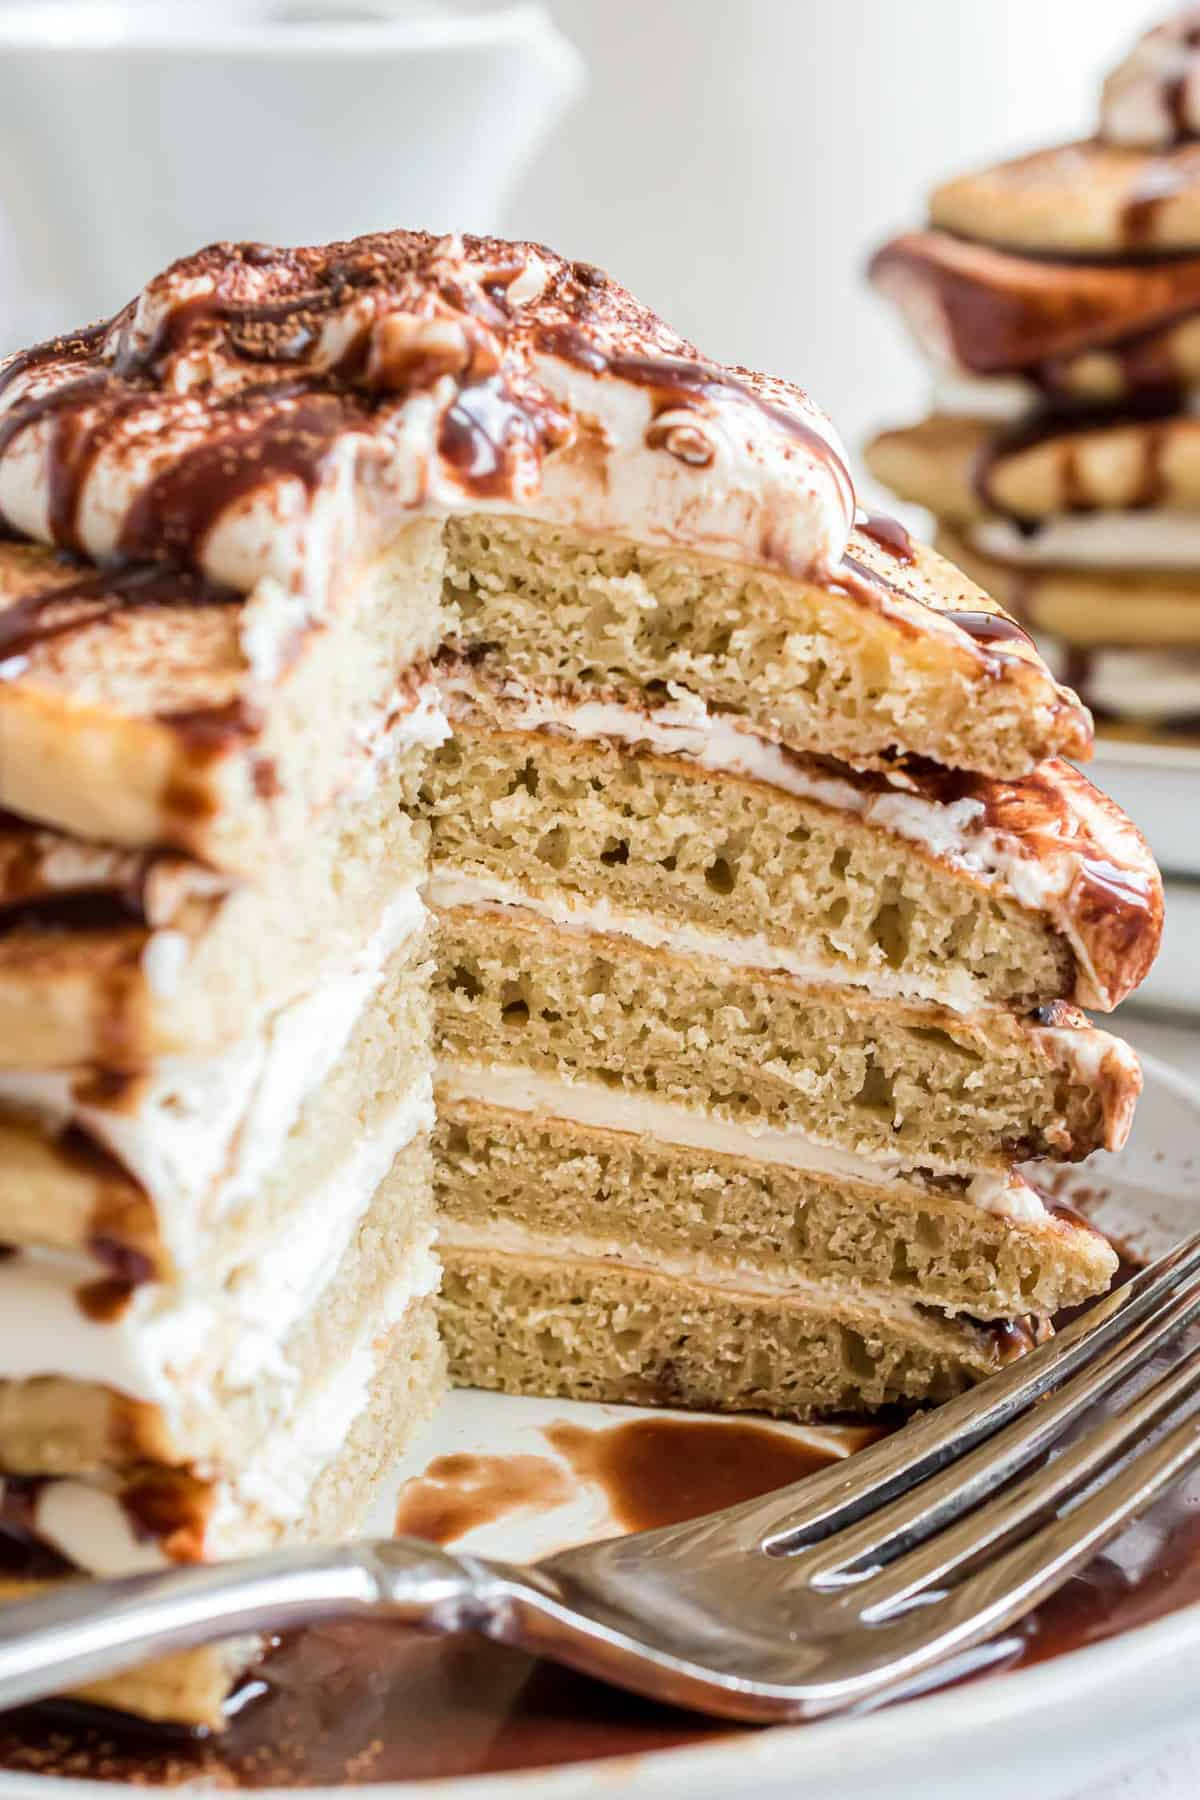 Stacked coffee pancakes cut to show mascarpone filling and